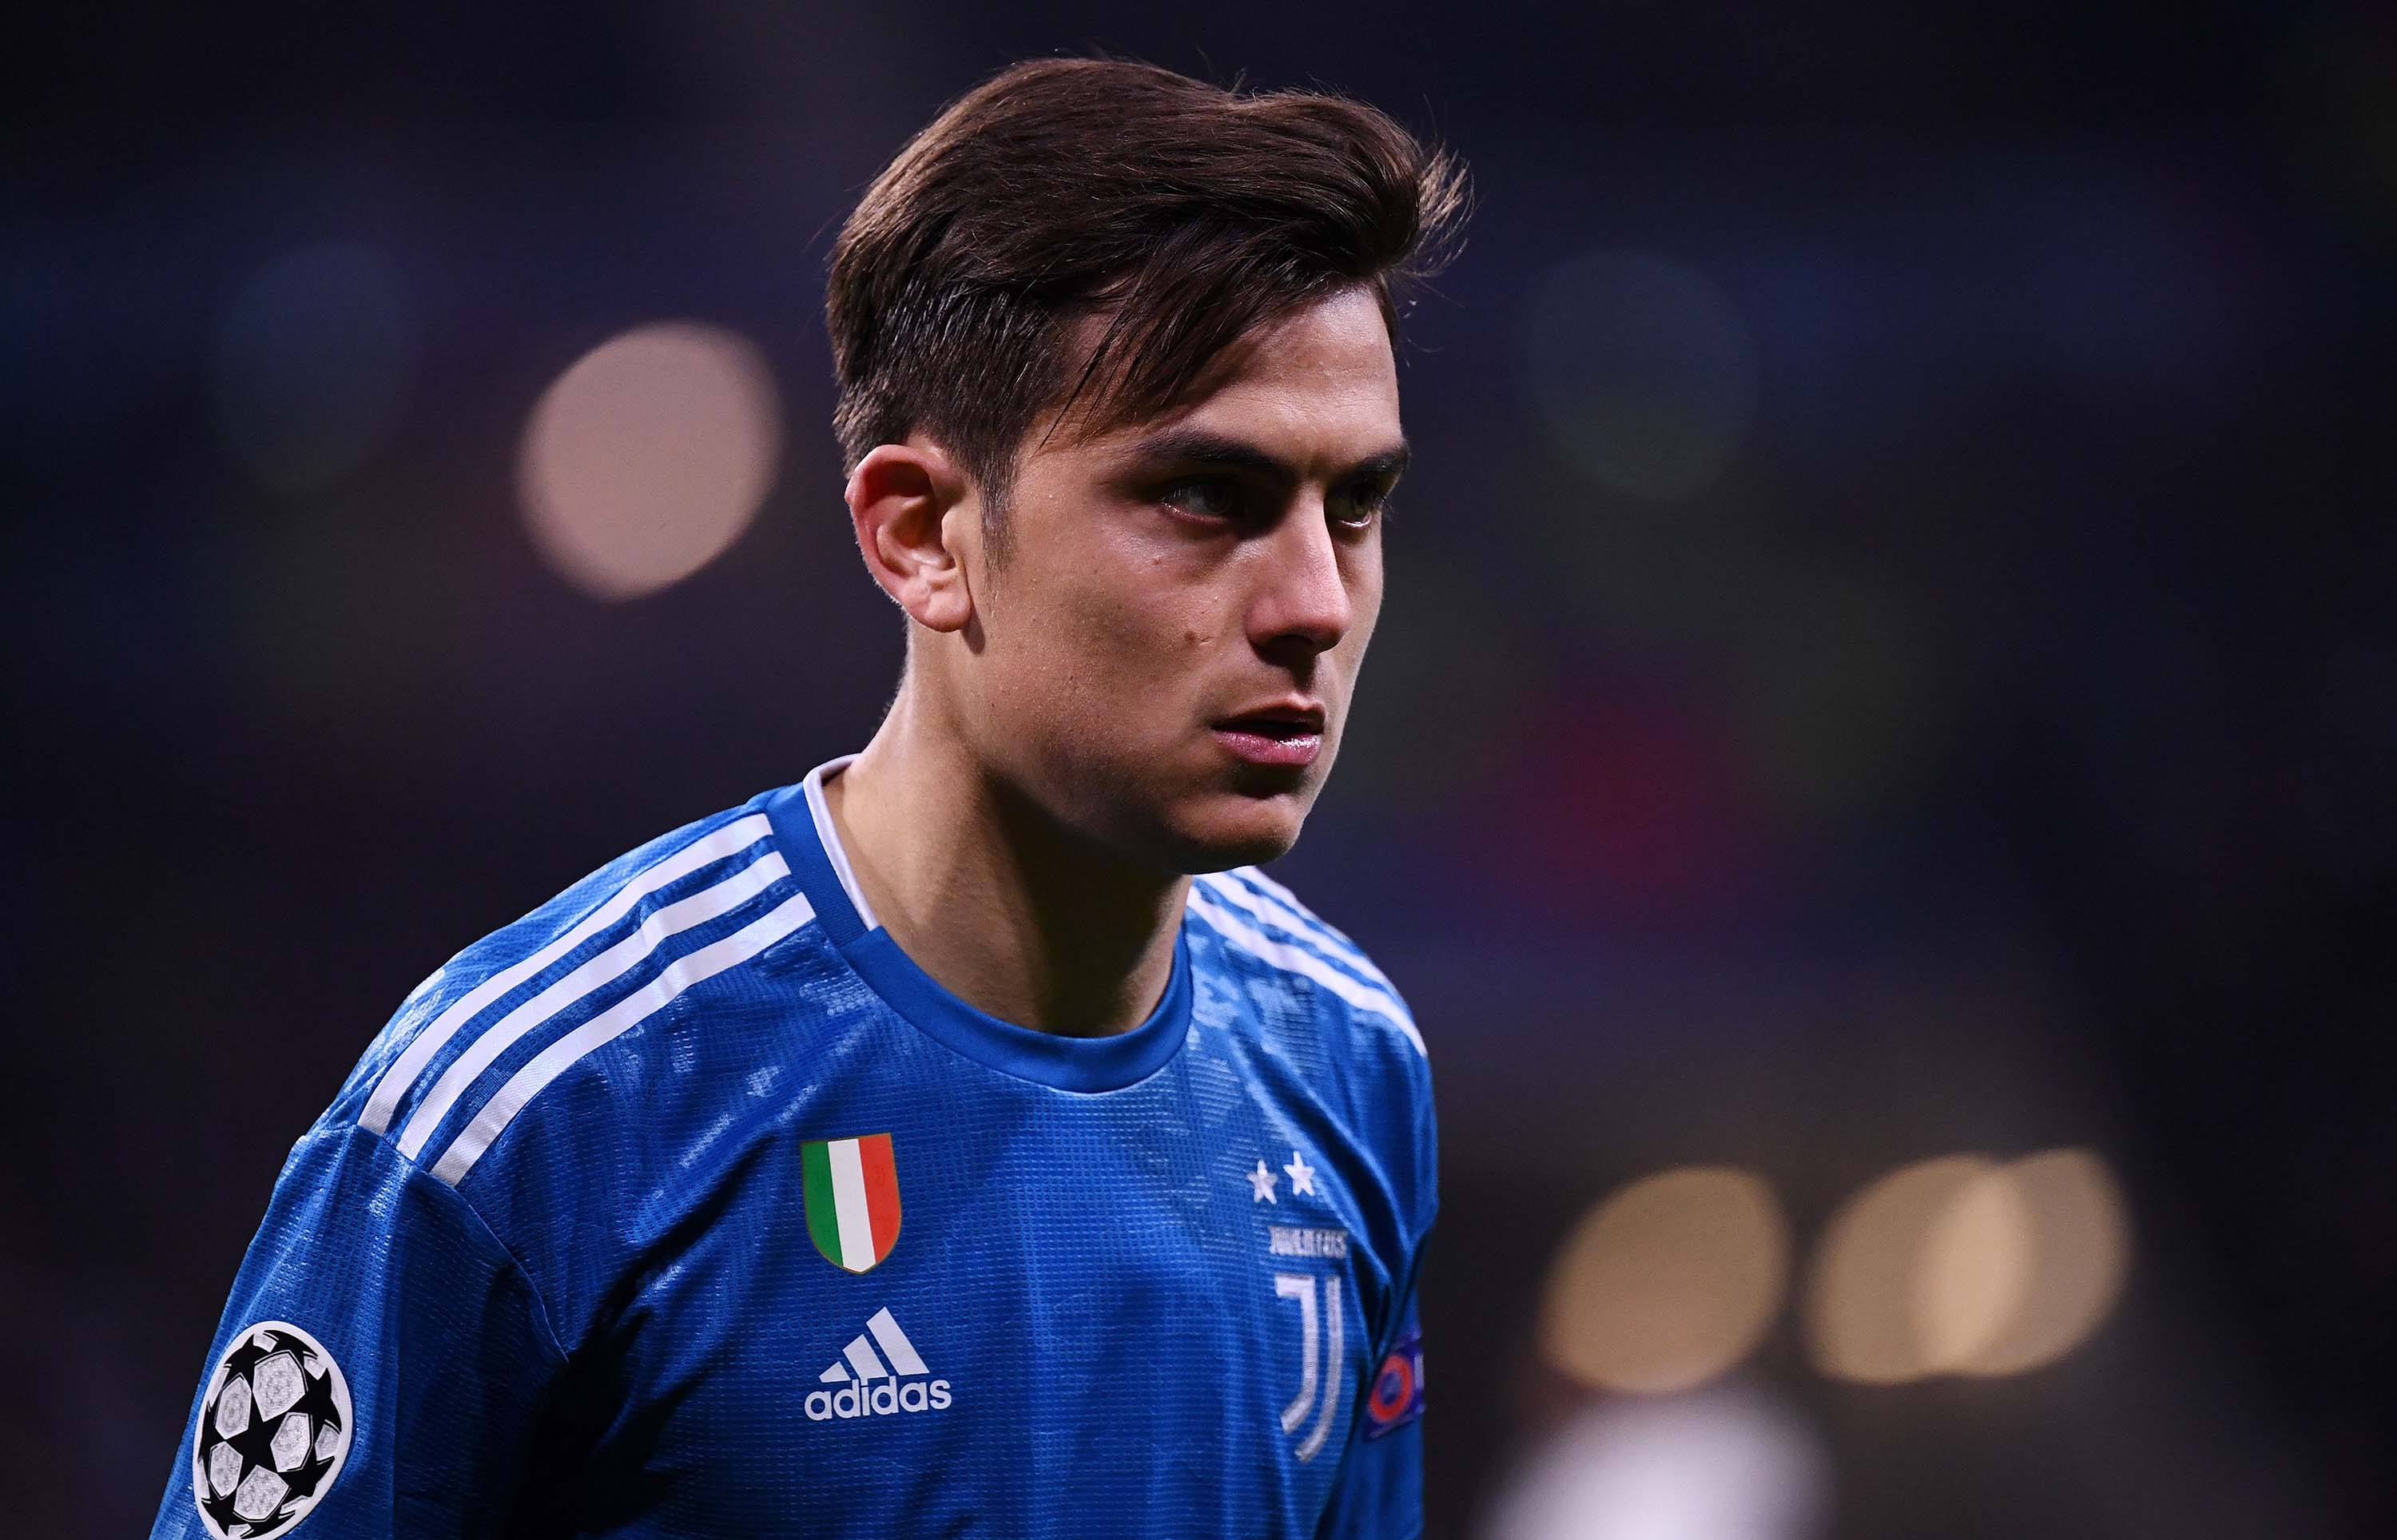 Juventus' Argentine forward Paulo Dybala is pictured during the UEFA Champions League match between Lyon and Juventus at the Parc Olympique Lyonnais stadium in Decines-Charpieu, France, on February 26.